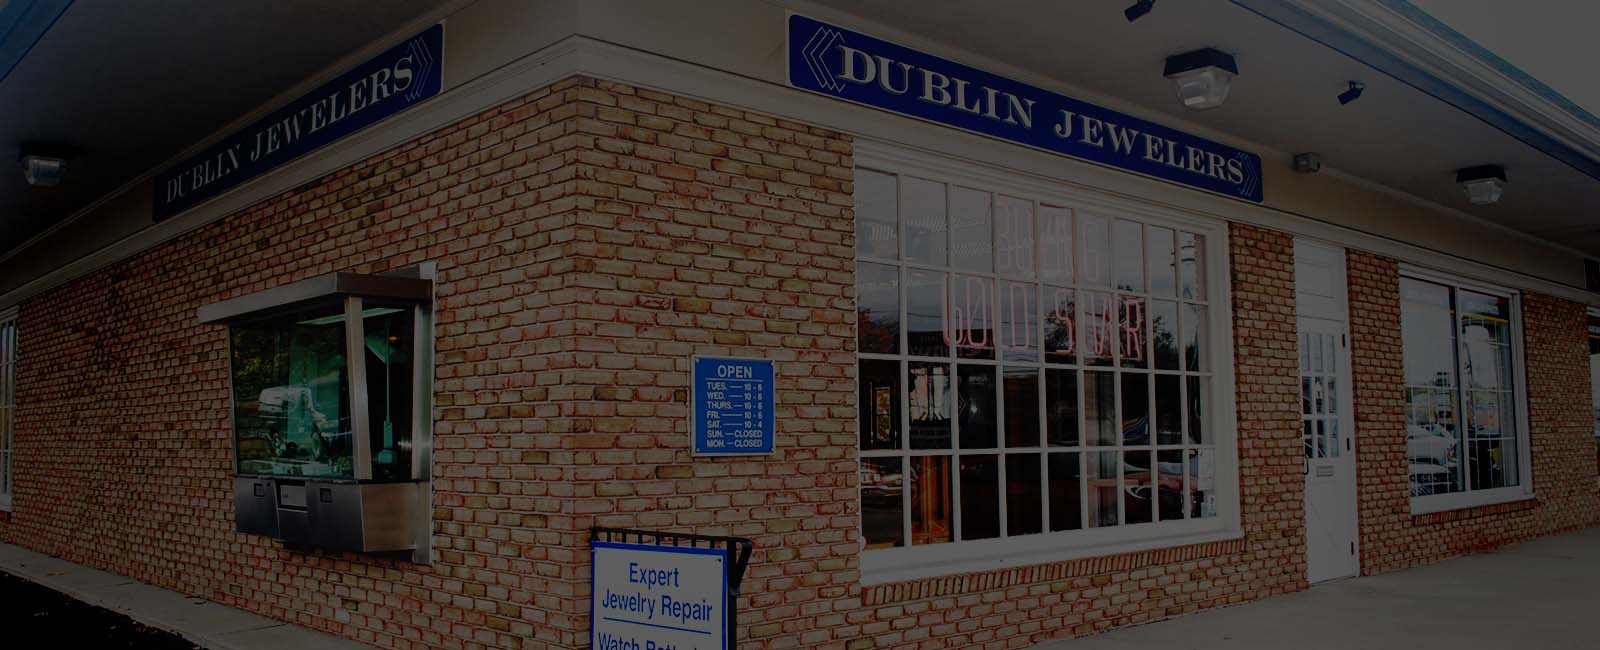 Buy and Sell Jewelry at Dublin Jewelers, Best Jewelers in Philadelphia